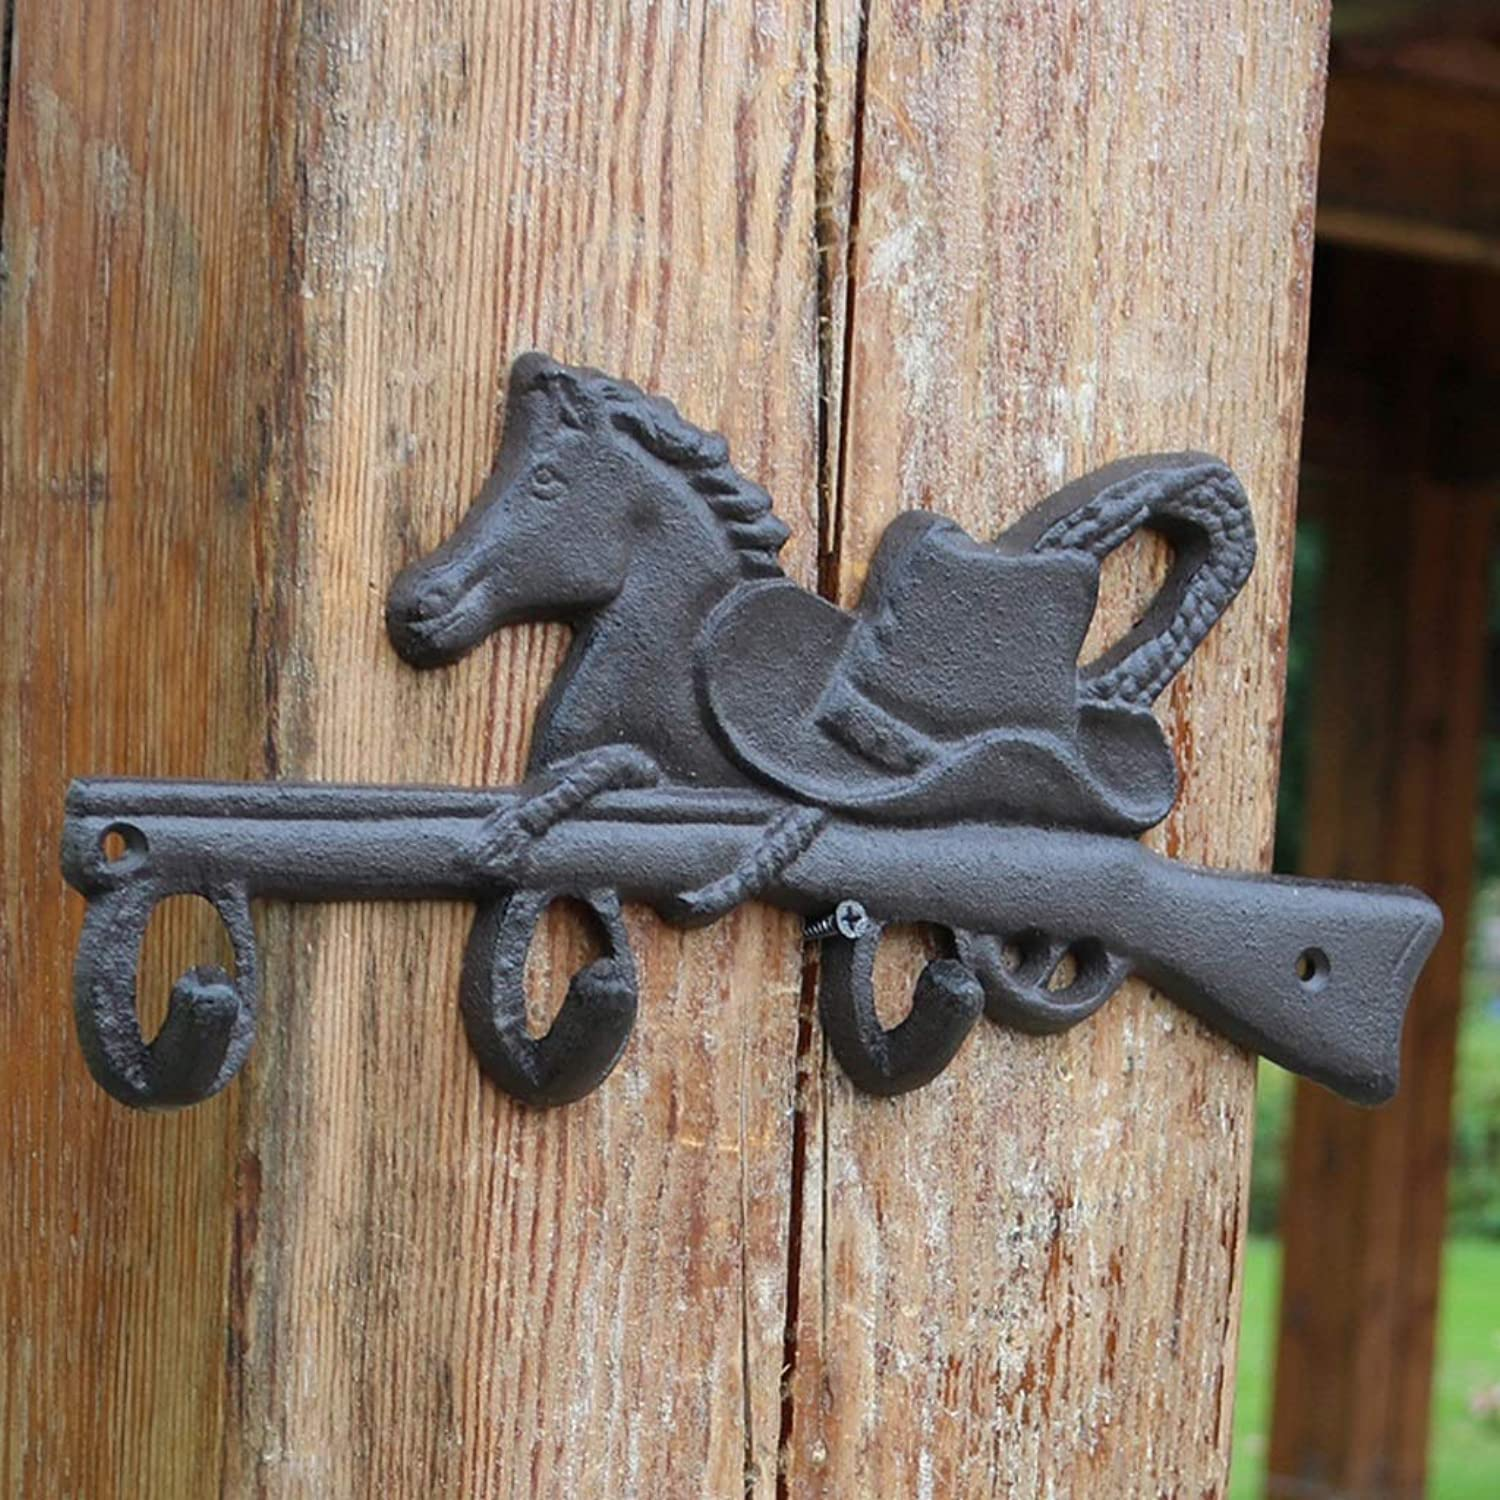 XUYRENP Country Retro Cast Iron Crafts Hook Wall Coat Hook Hook Cowboy Hook Home Decoration